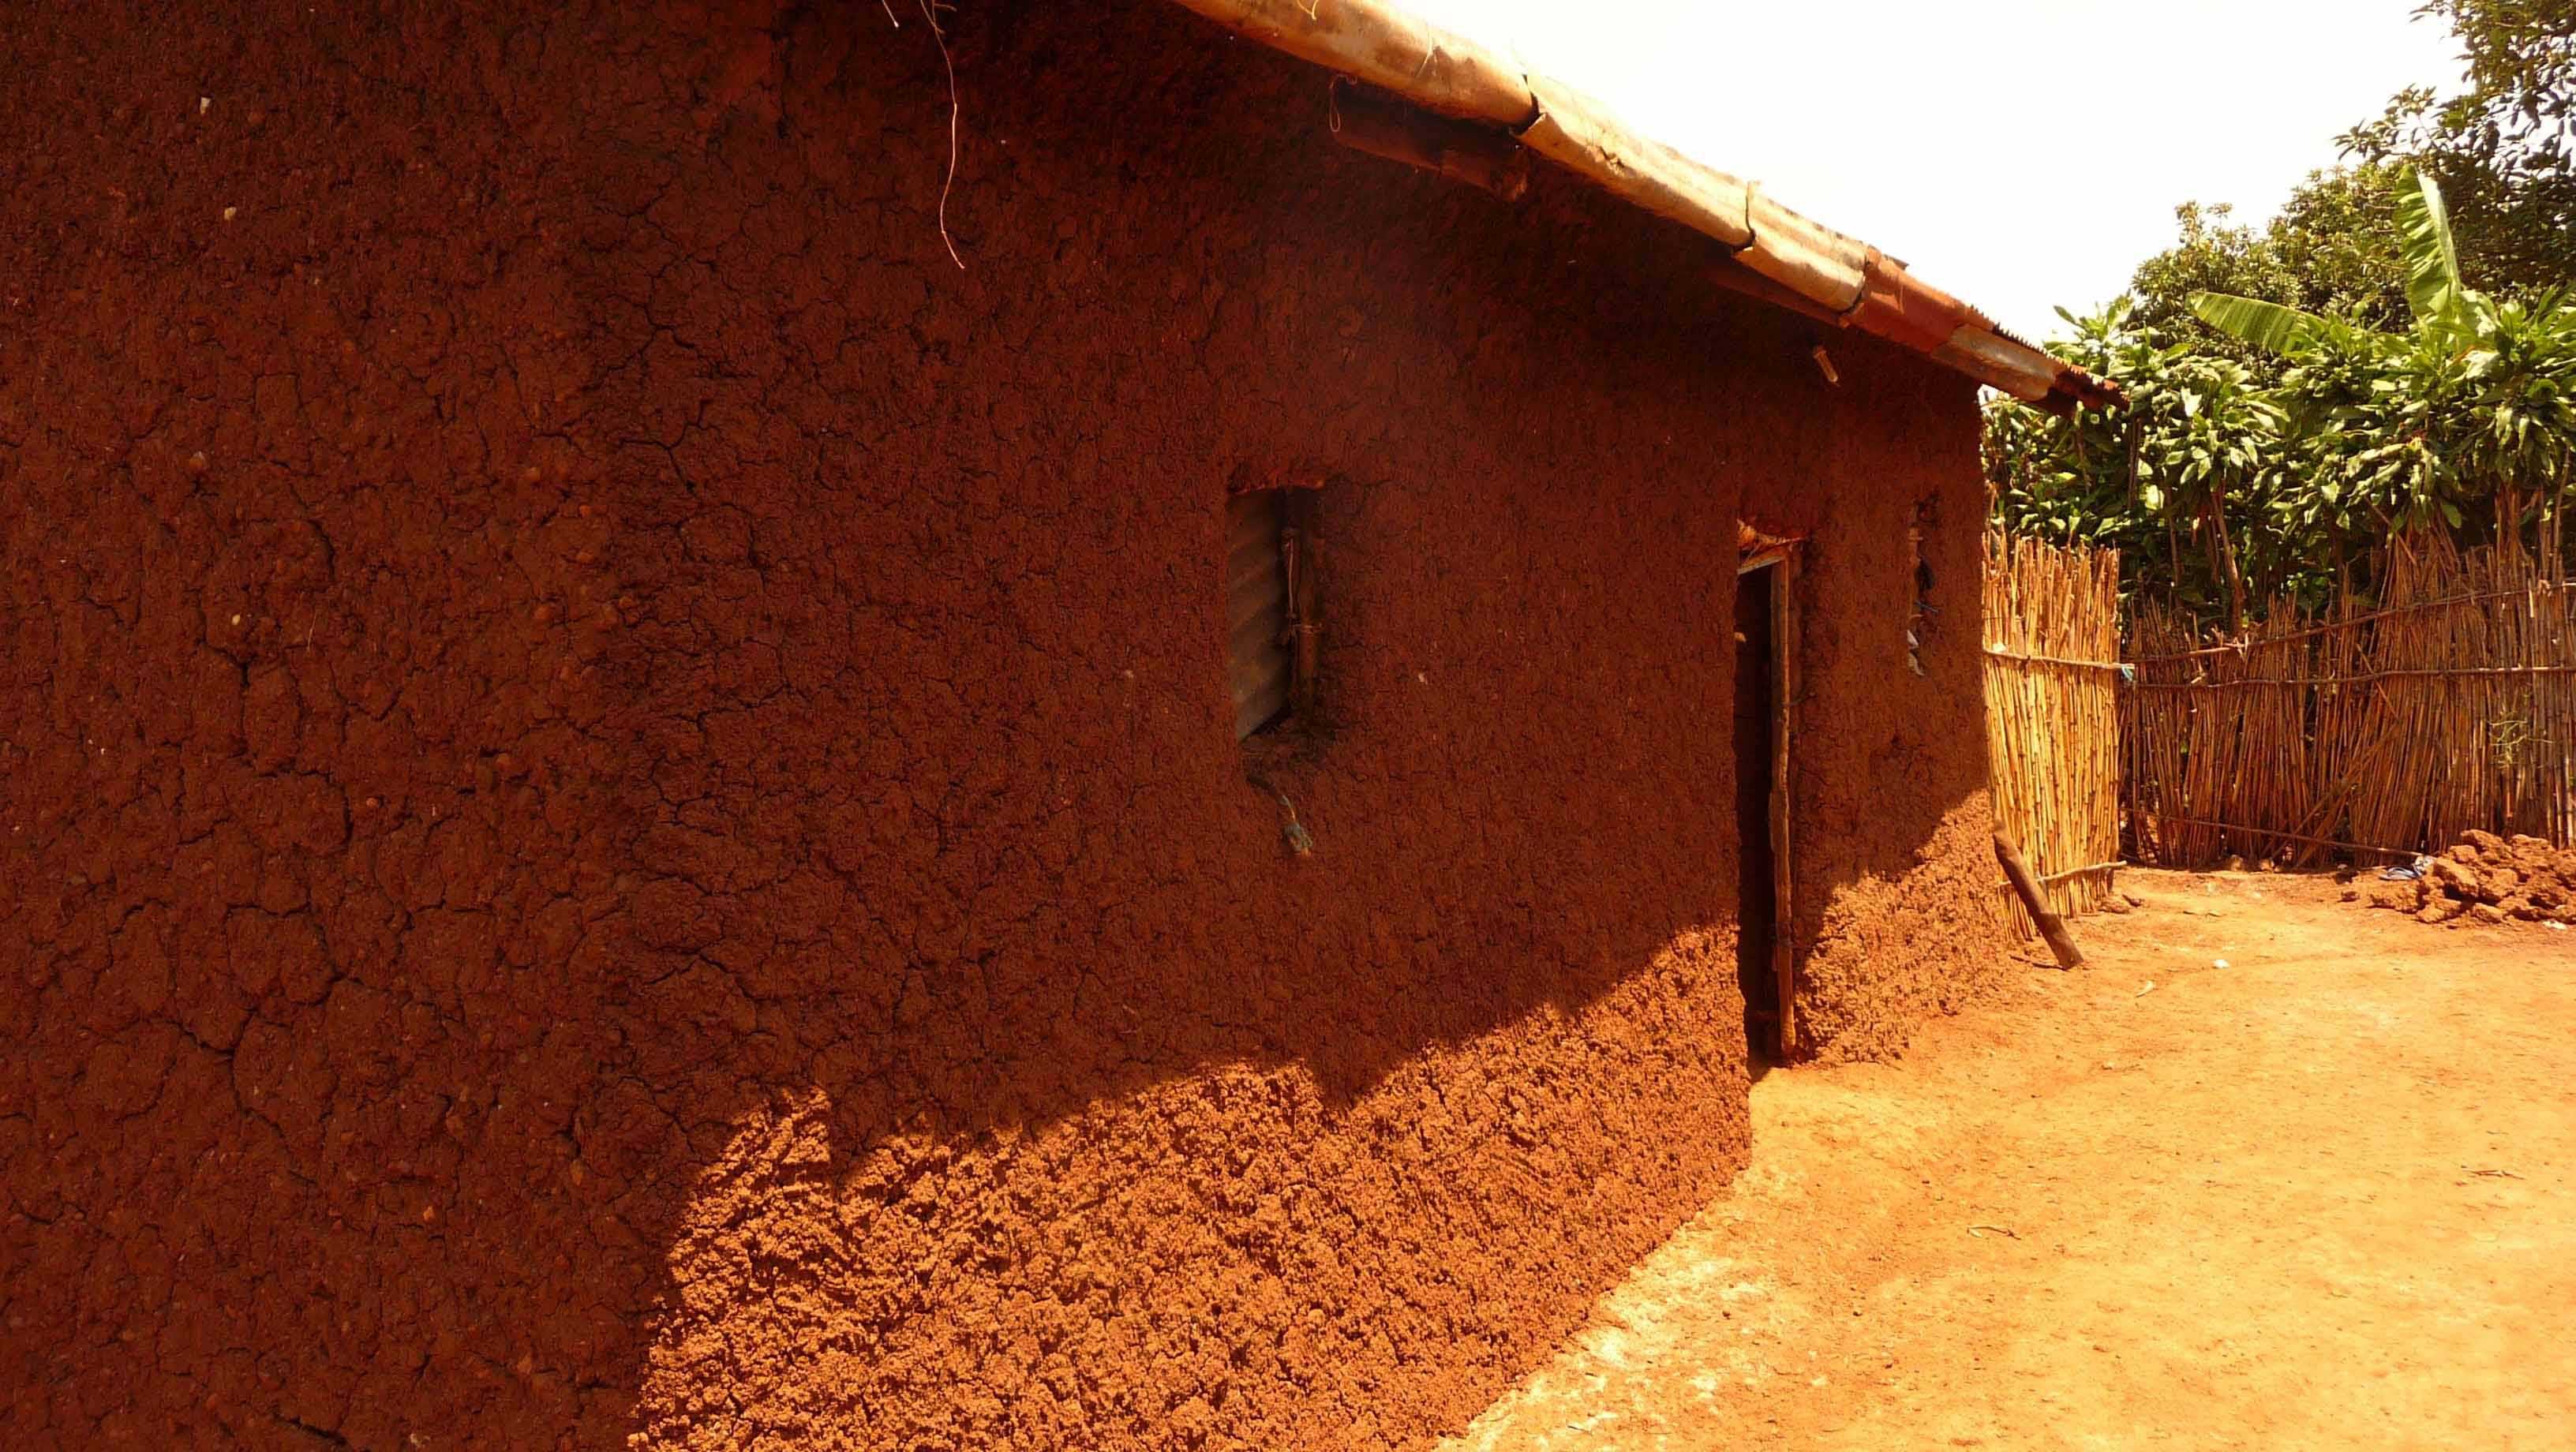 Rwanda recently re-plastered wall - exposure and unfinsished quality of the plas